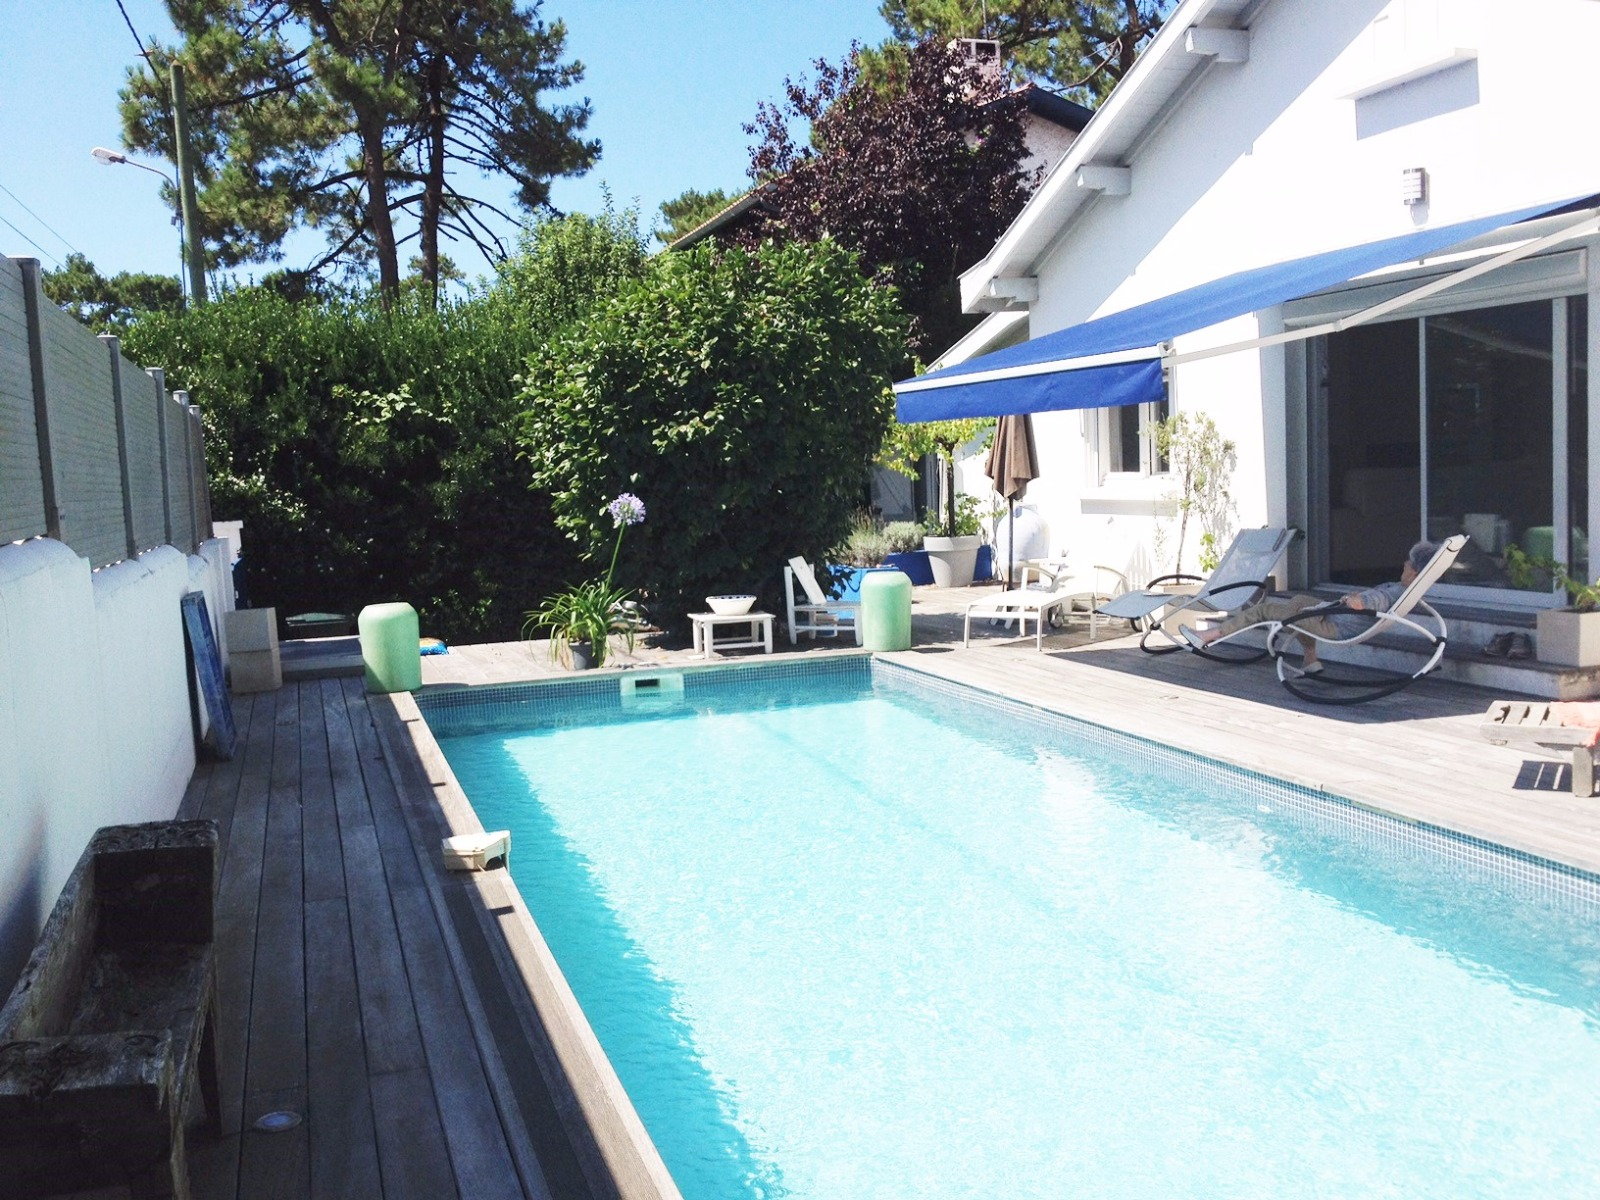 Agence immobili re biarritz vente et achat immobilier for Agence immobiliere 47